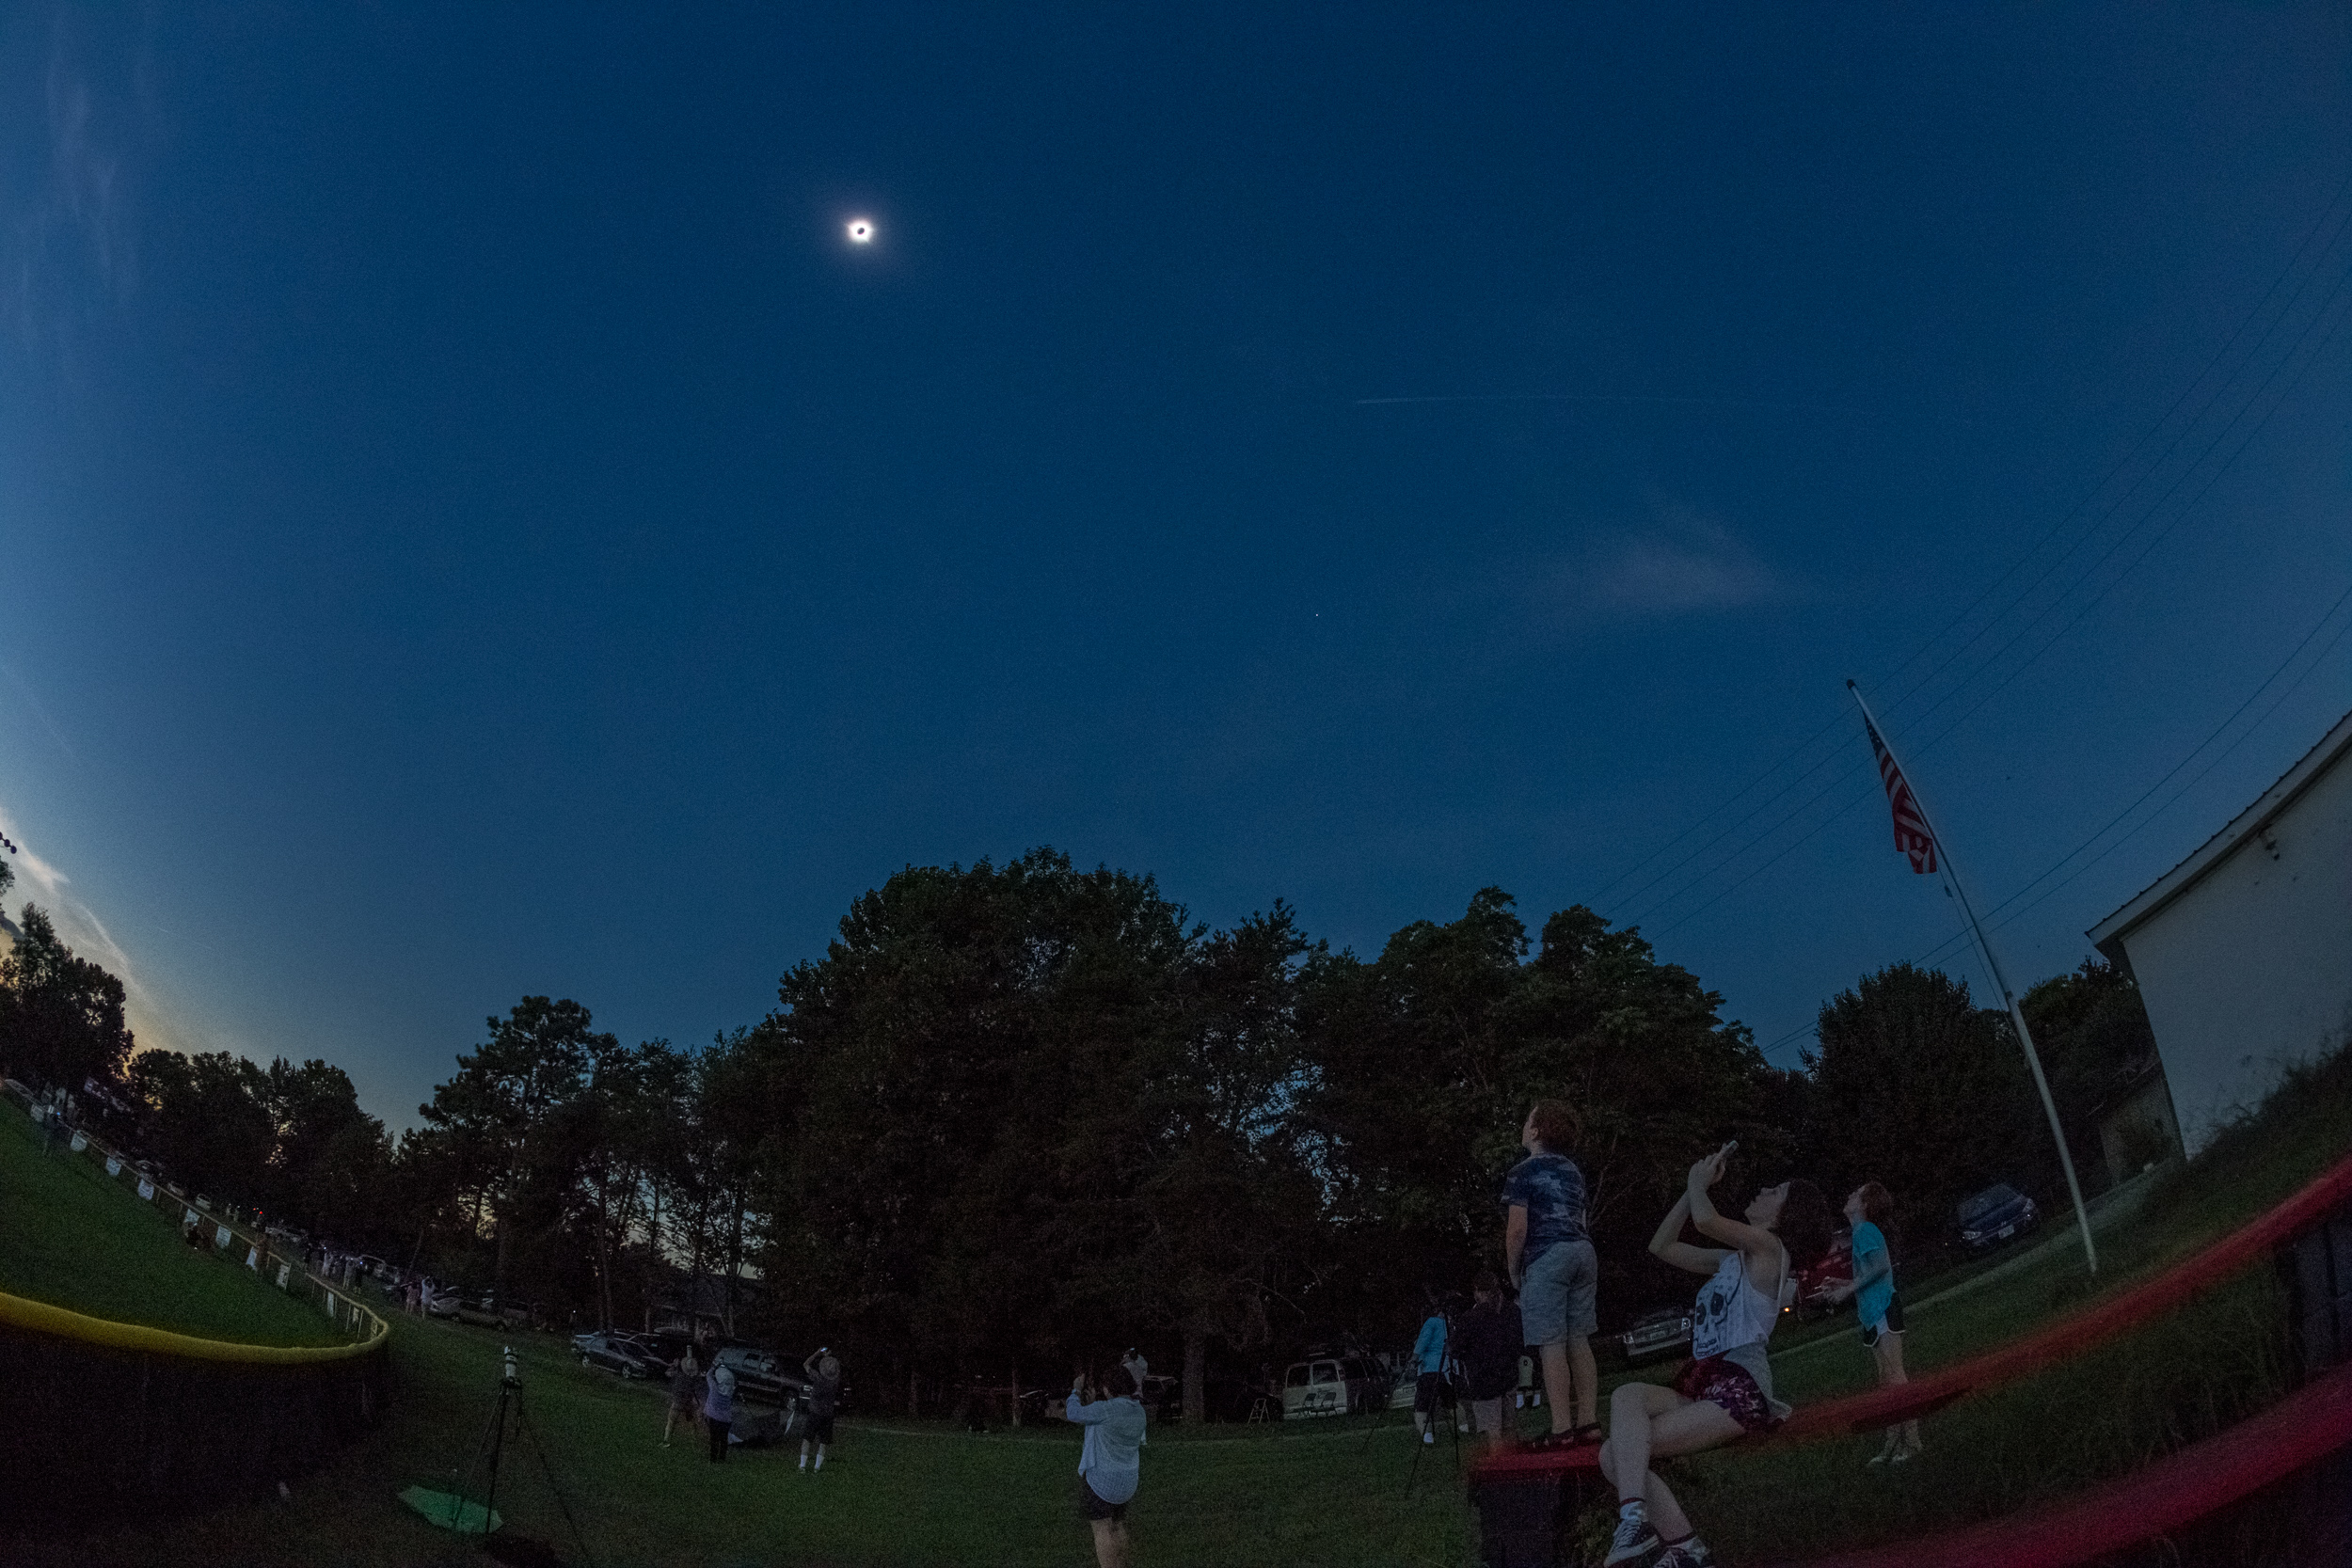 Spring City Tn Total Eclipse